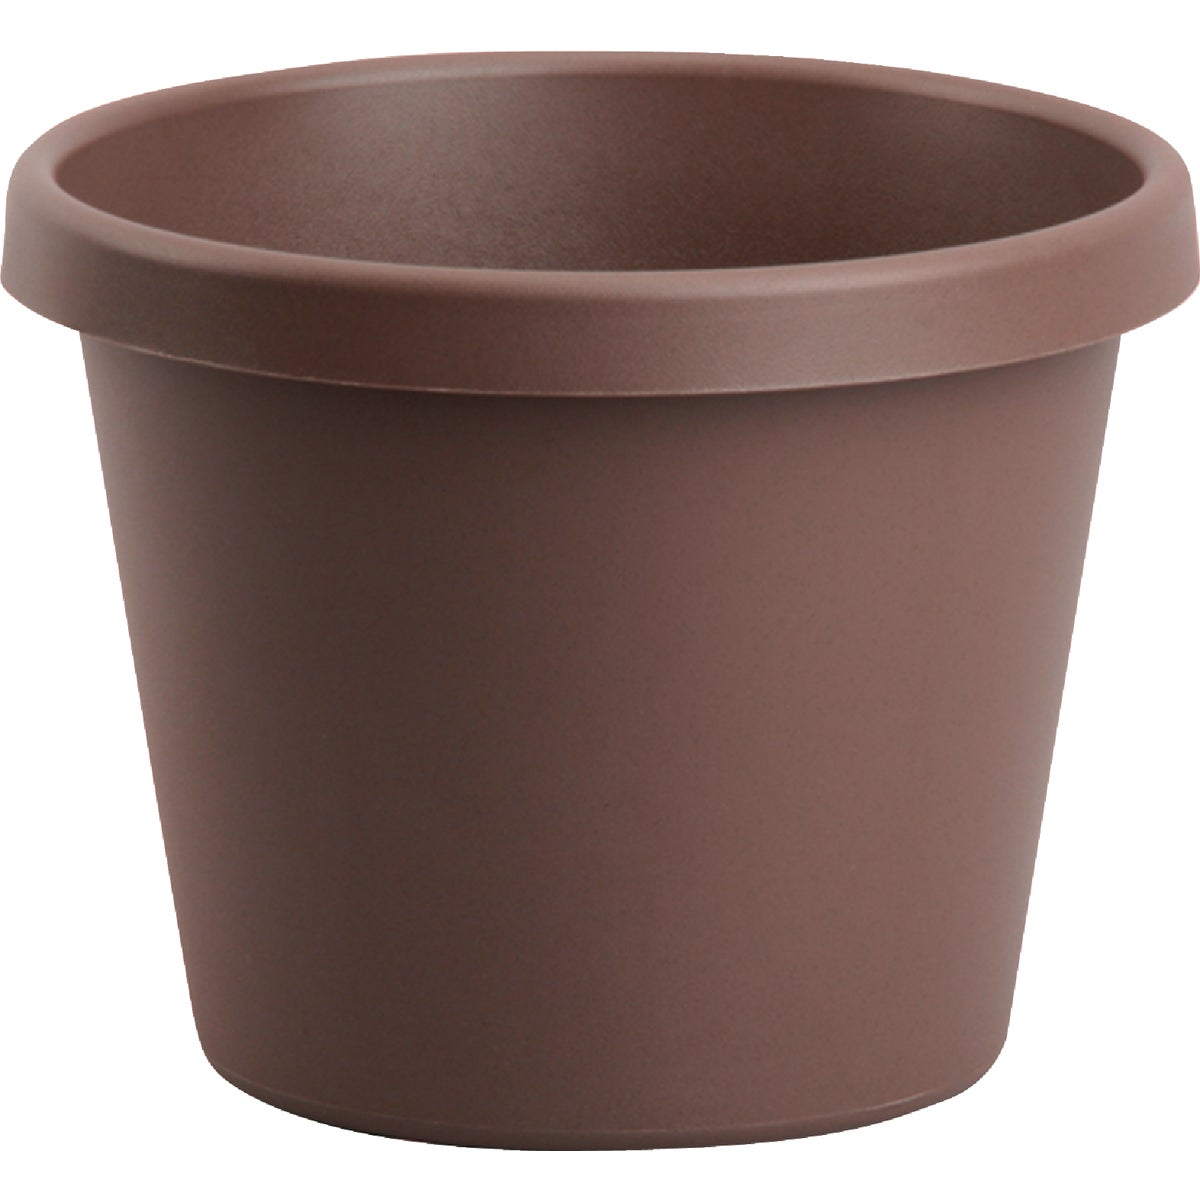 "12"" CHOCOLATE POLY POT - 50312CH by Fiskars Brands Inc"